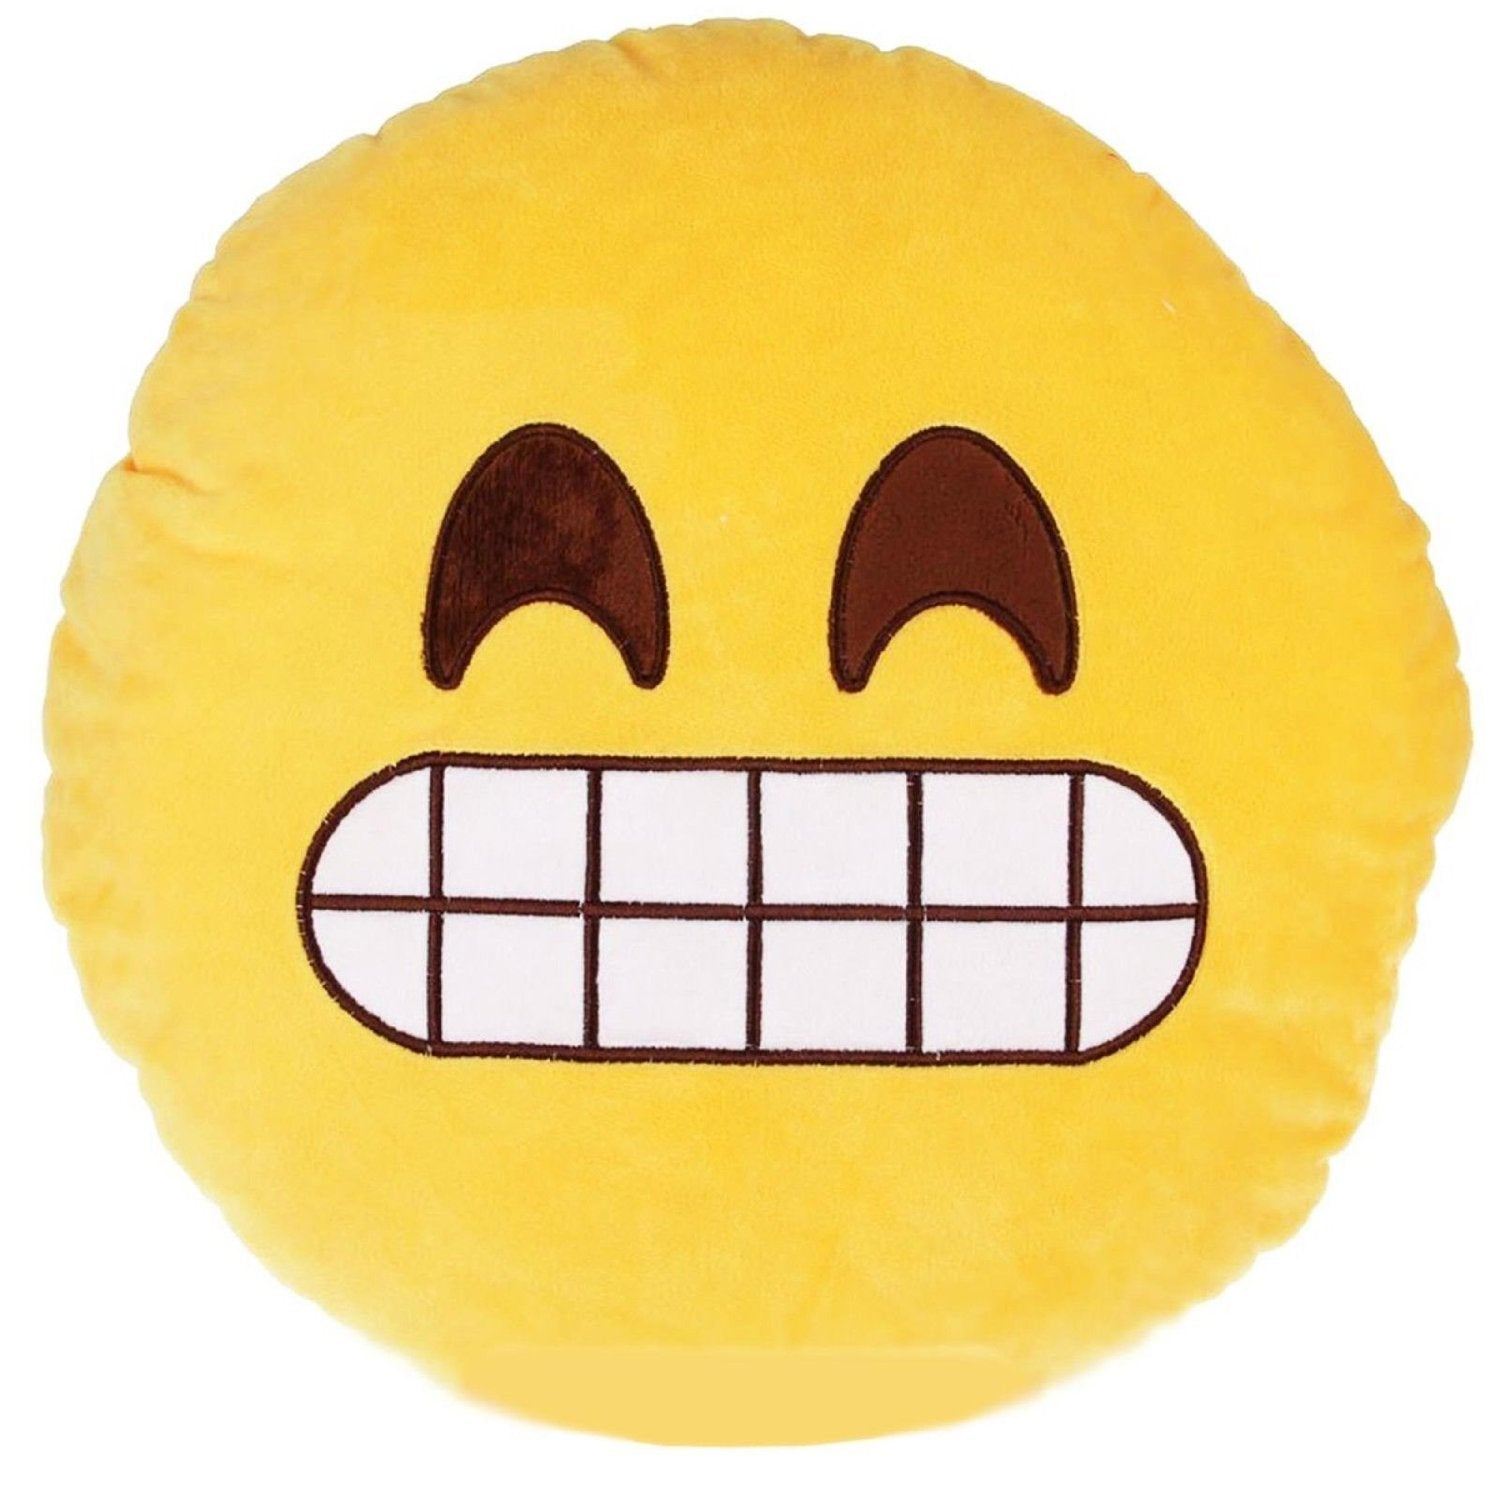 yellow round smile cheese emoticon cushion desire deluxe store